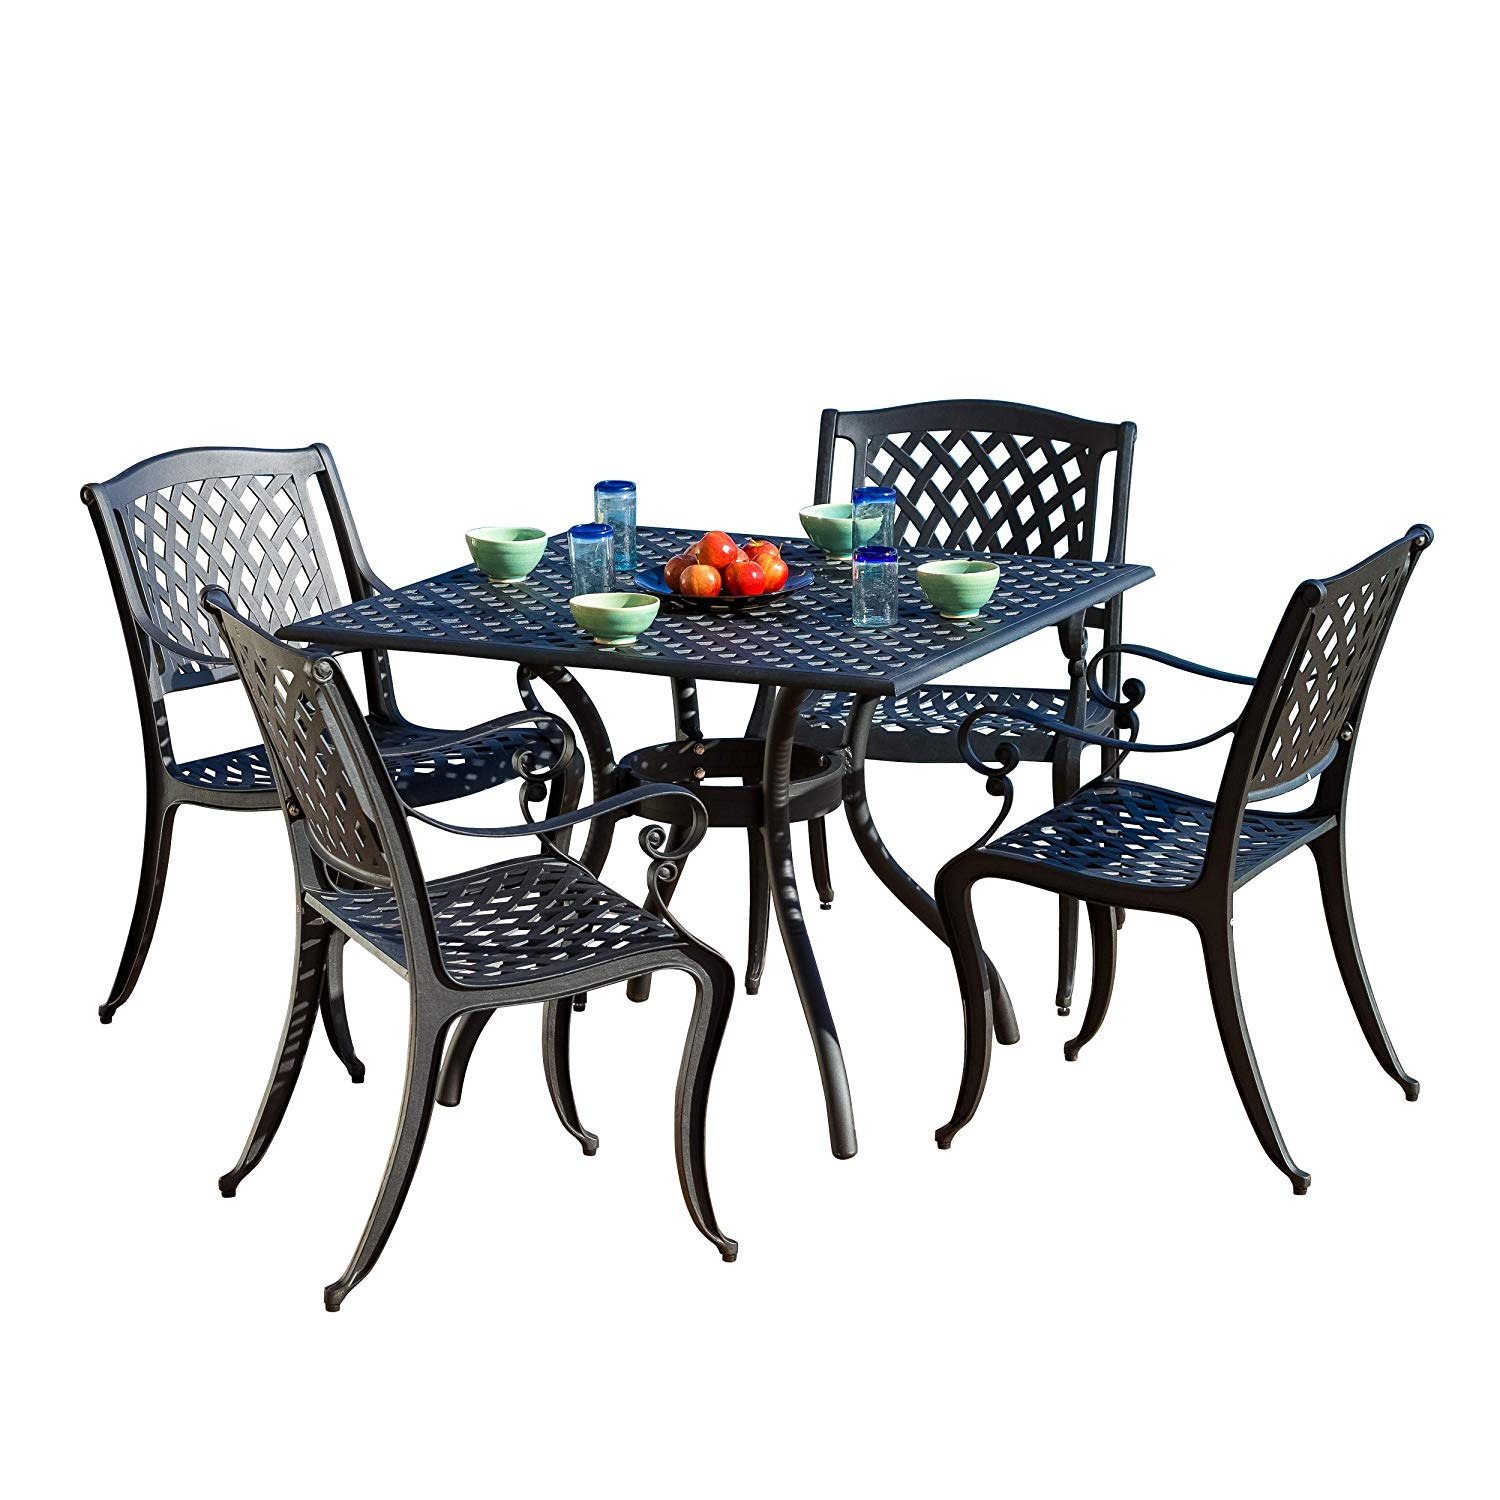 marietta outdoor furniture dining set cast aluminum harrietta piece accent table and chairs for patio deck garden ashley home glass top coffee wide threshold wood side tables